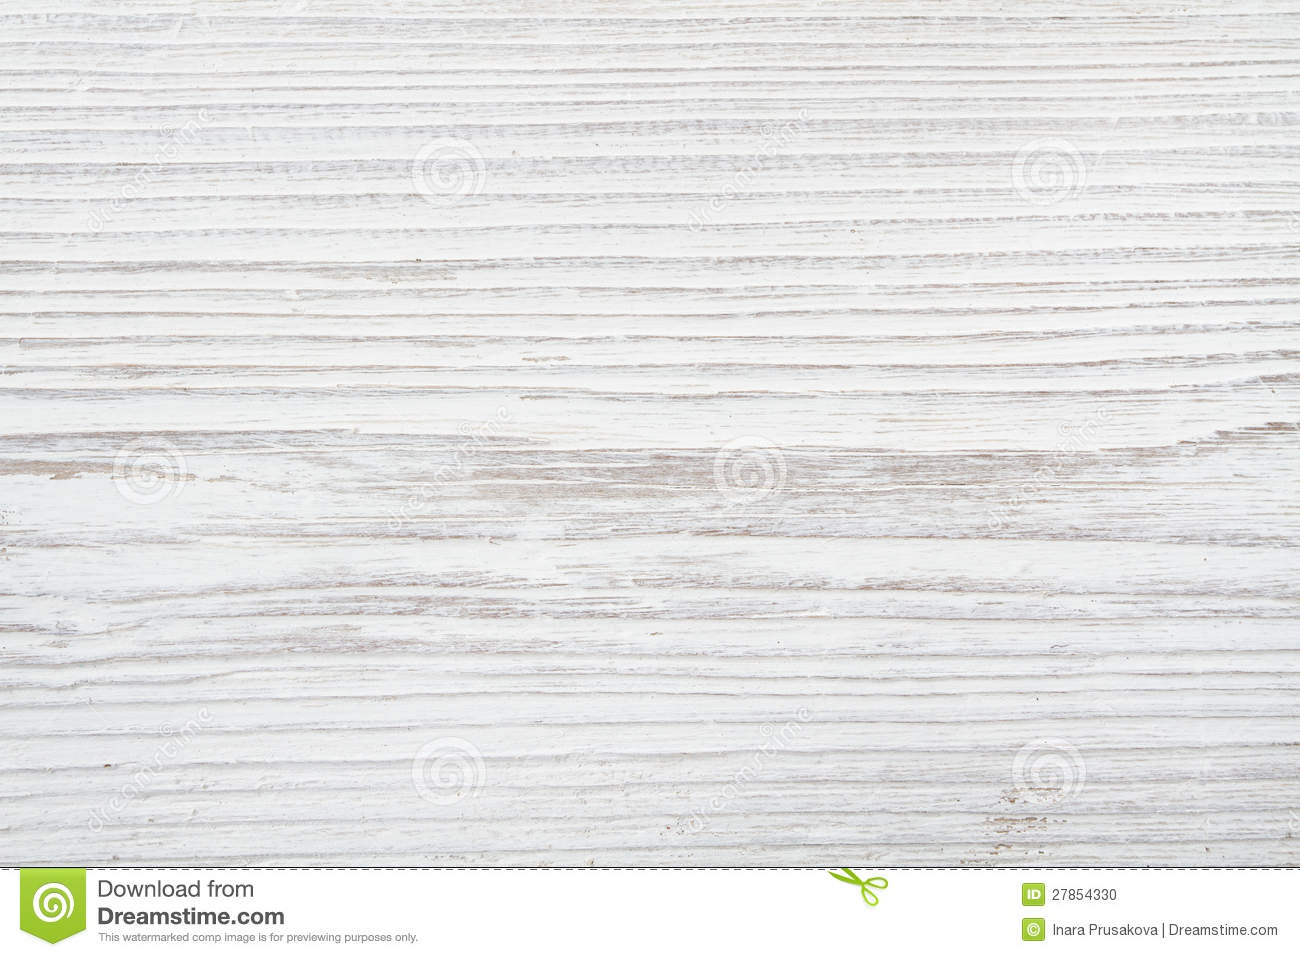 Old vintage white natural wood or wooden texture background or - Background Board Grey Pattern Texture Timber White Wood Wooden